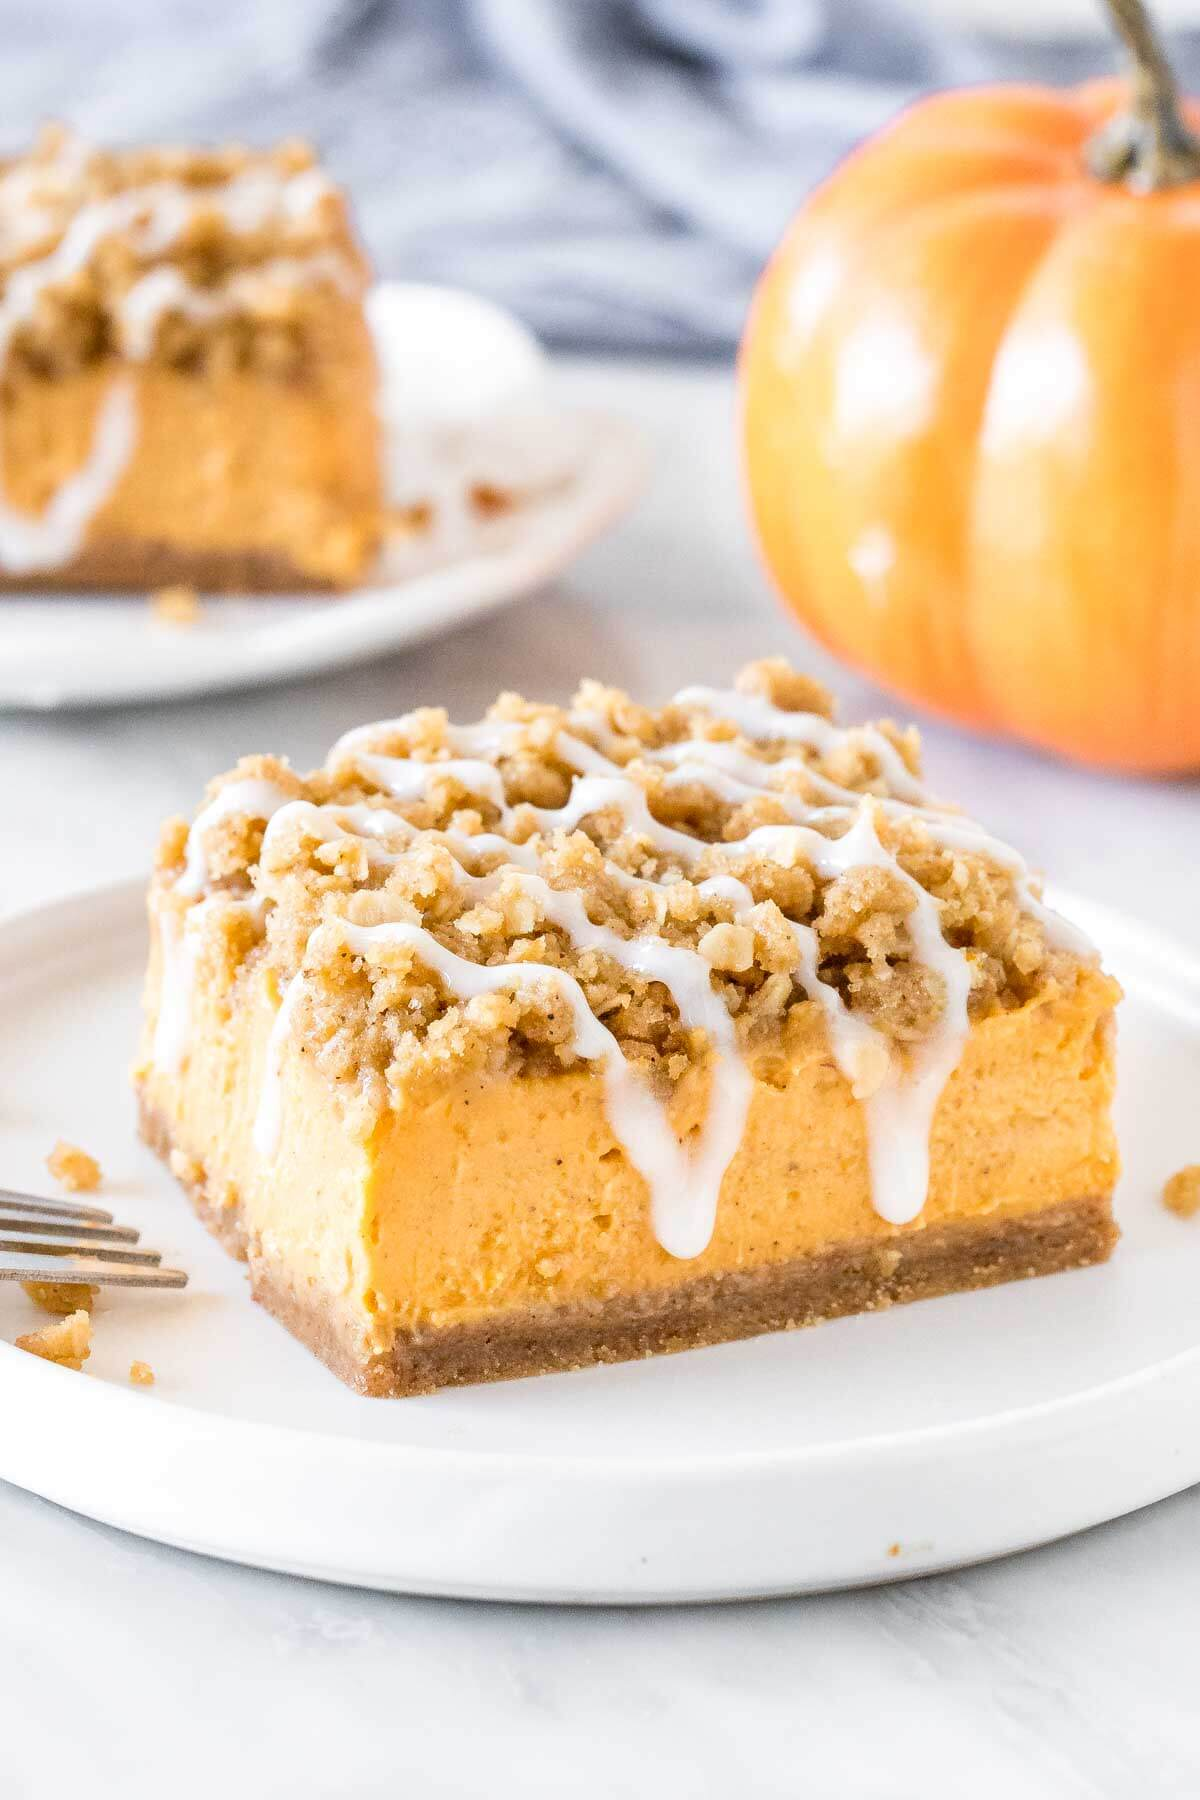 Slice of pumpkin streusel bars on a plate with a second piece in the background.